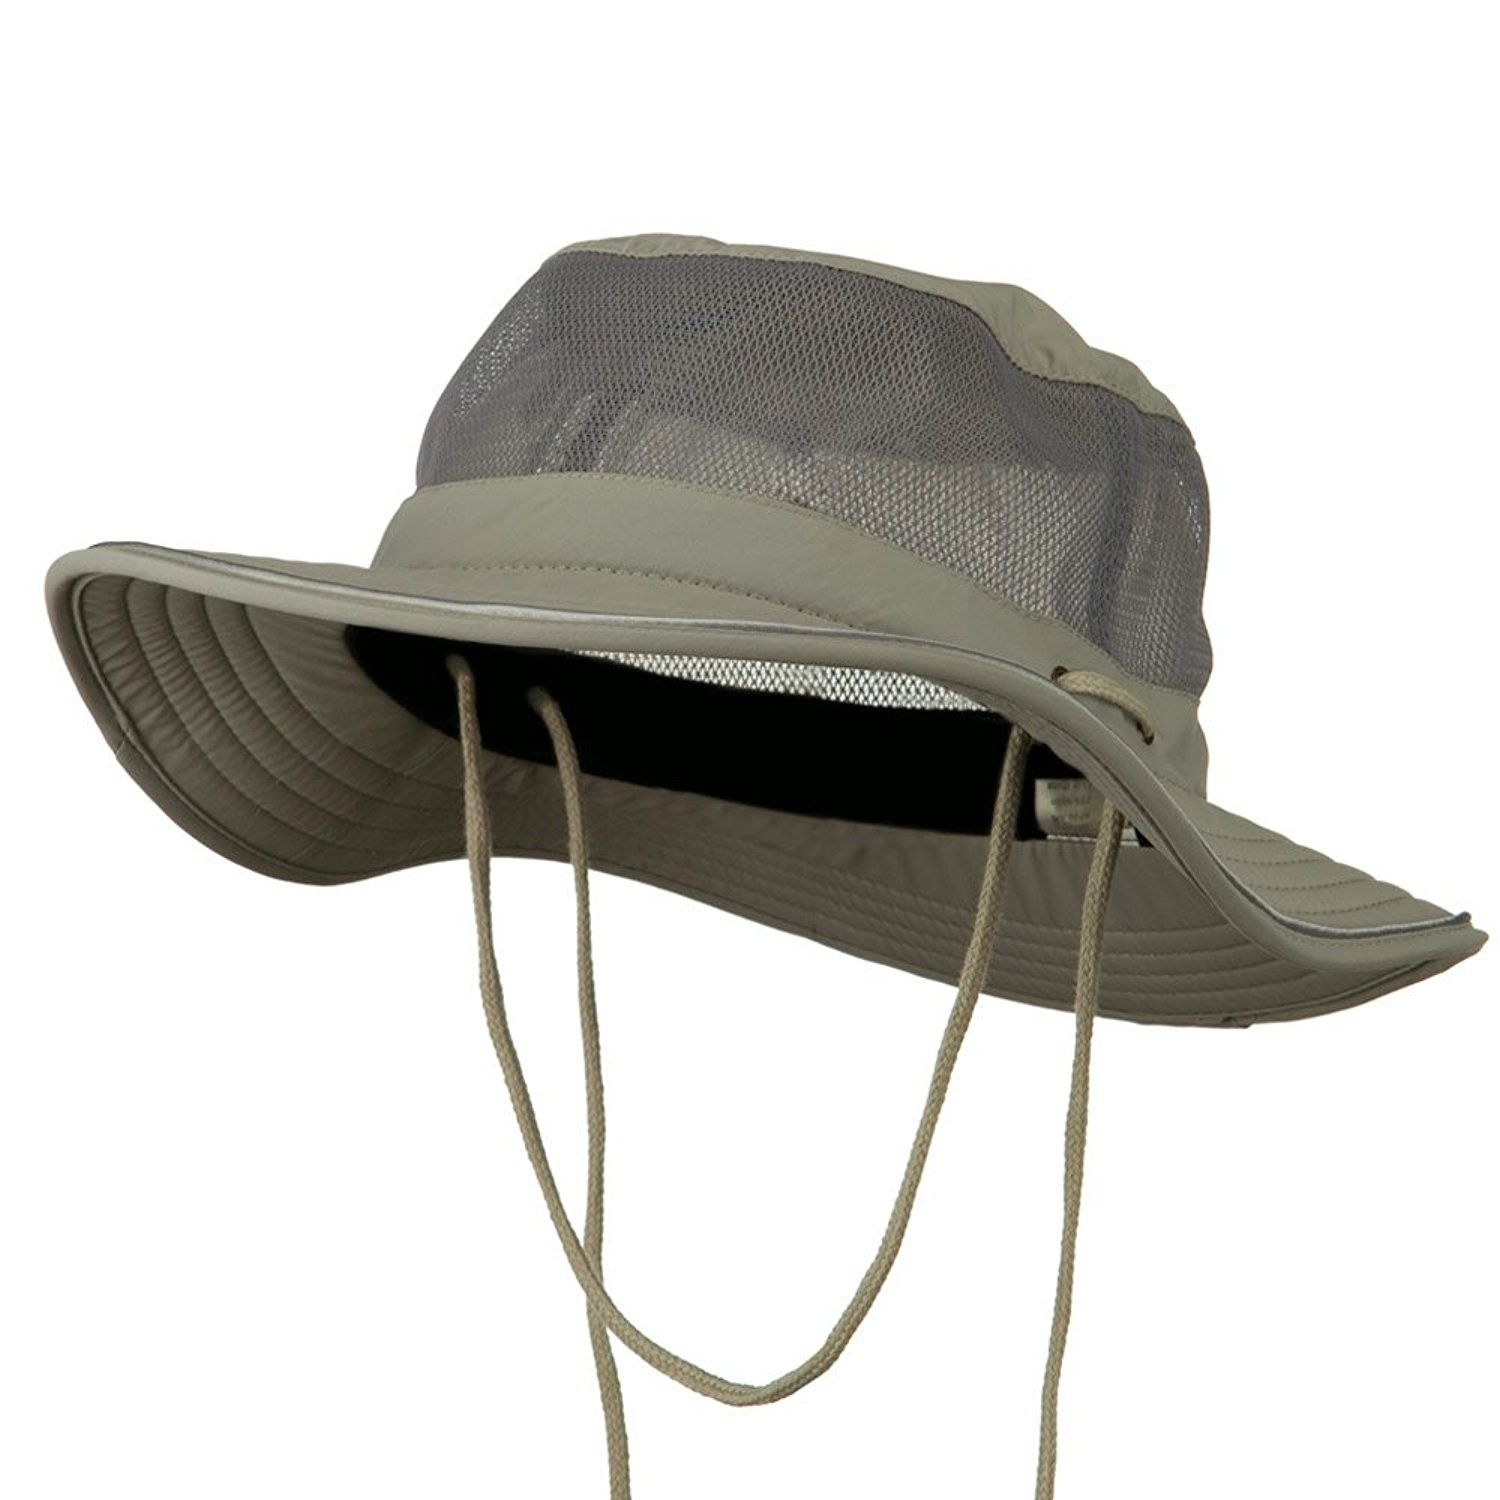 5fc314a86de Big Size Talson UV Mesh Bucket Hat - Grey (For Big Head) - CL11H0H6KA1 -  Hats   Caps